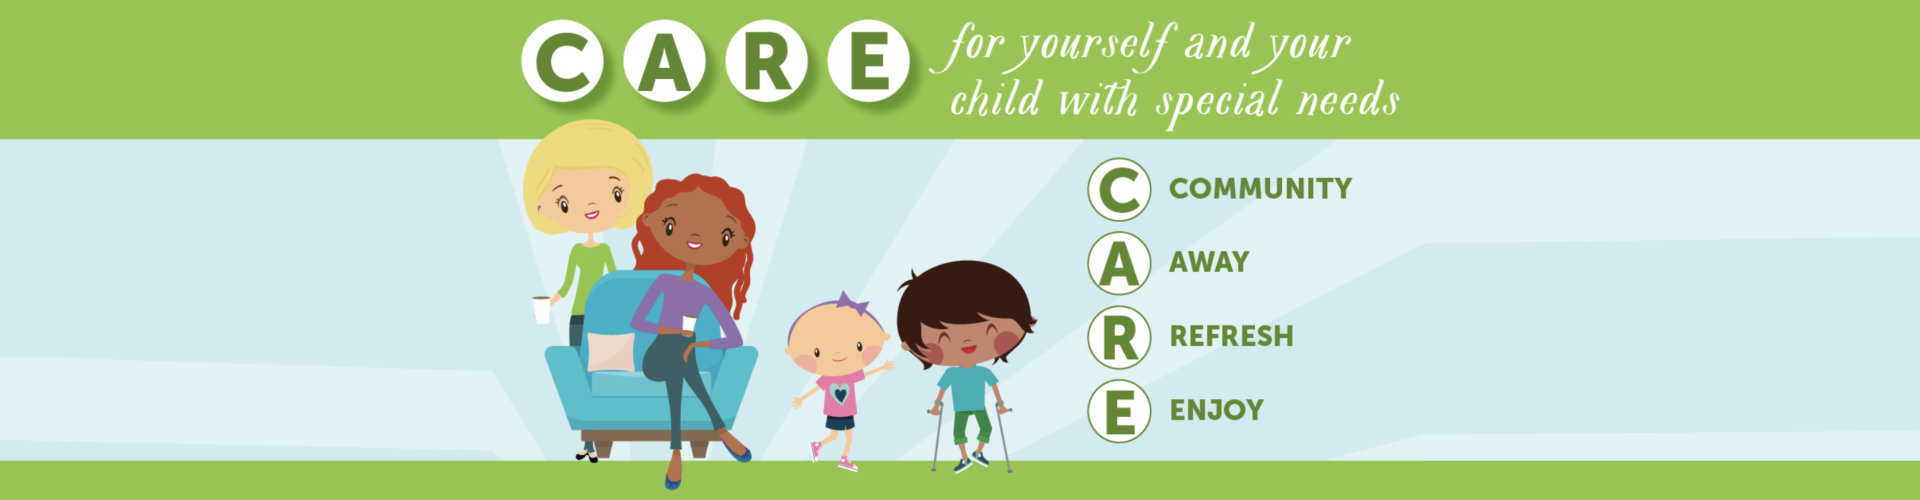 care banner